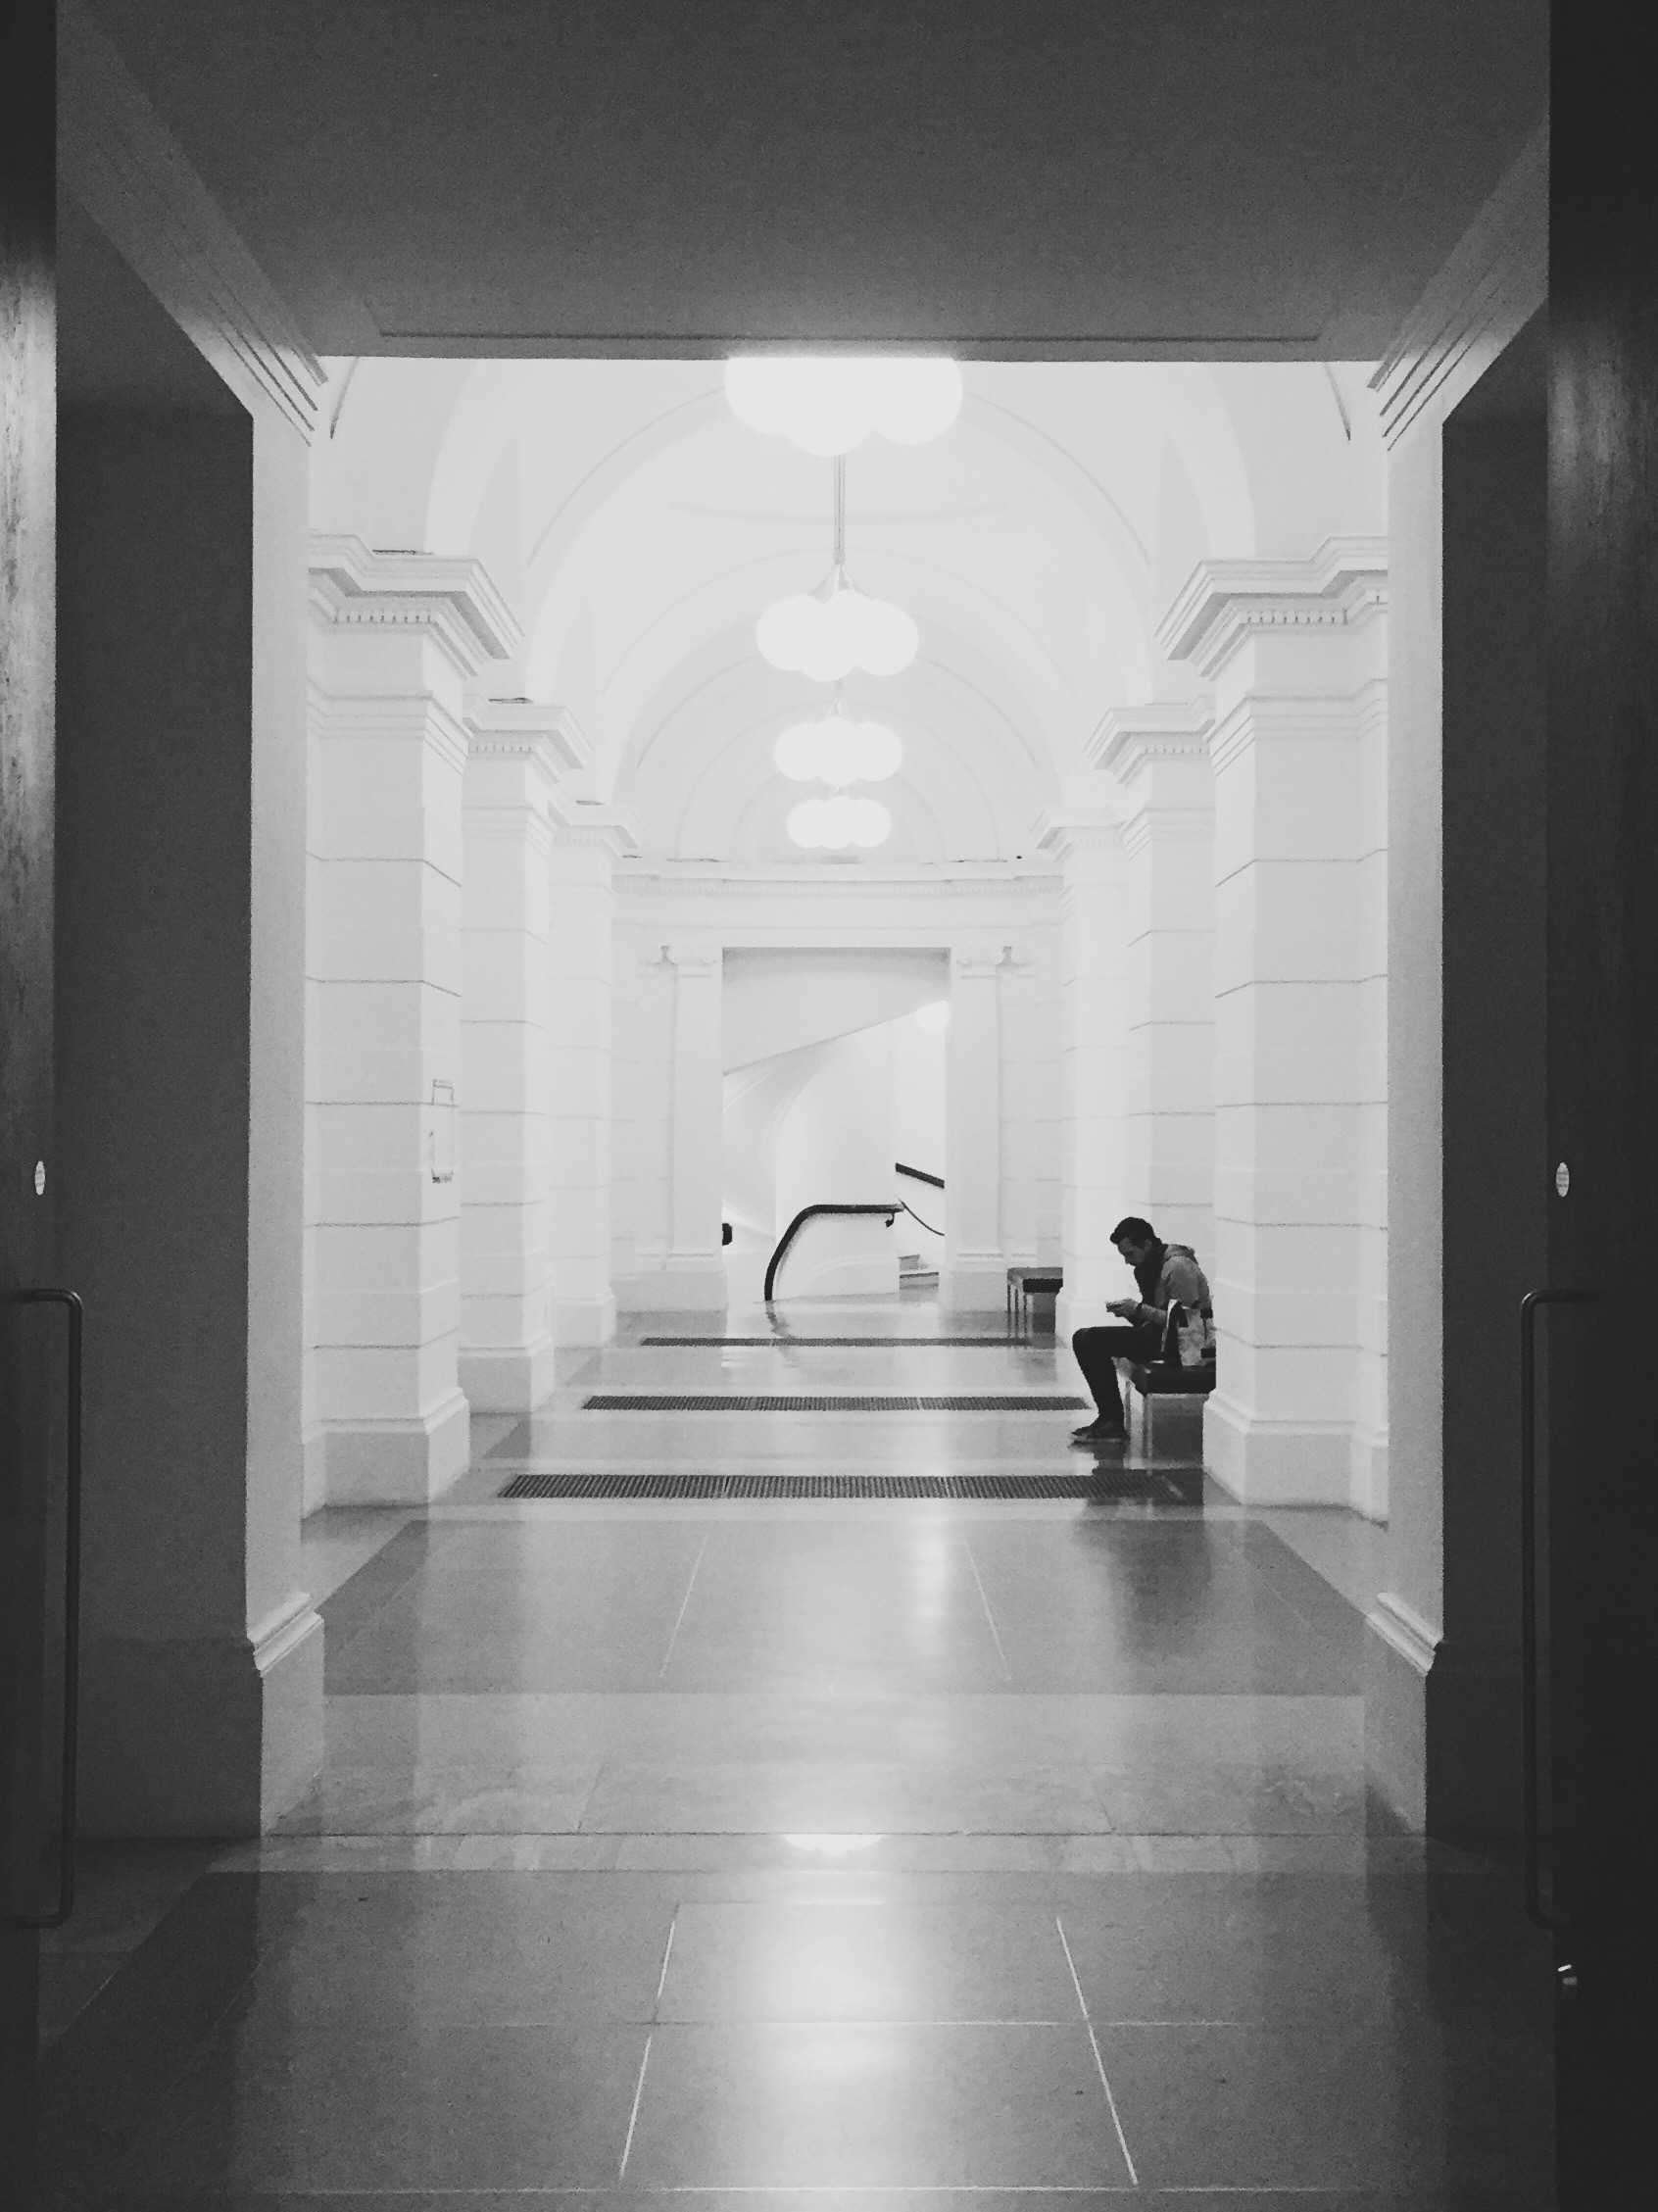 Corridors of Tate Britain